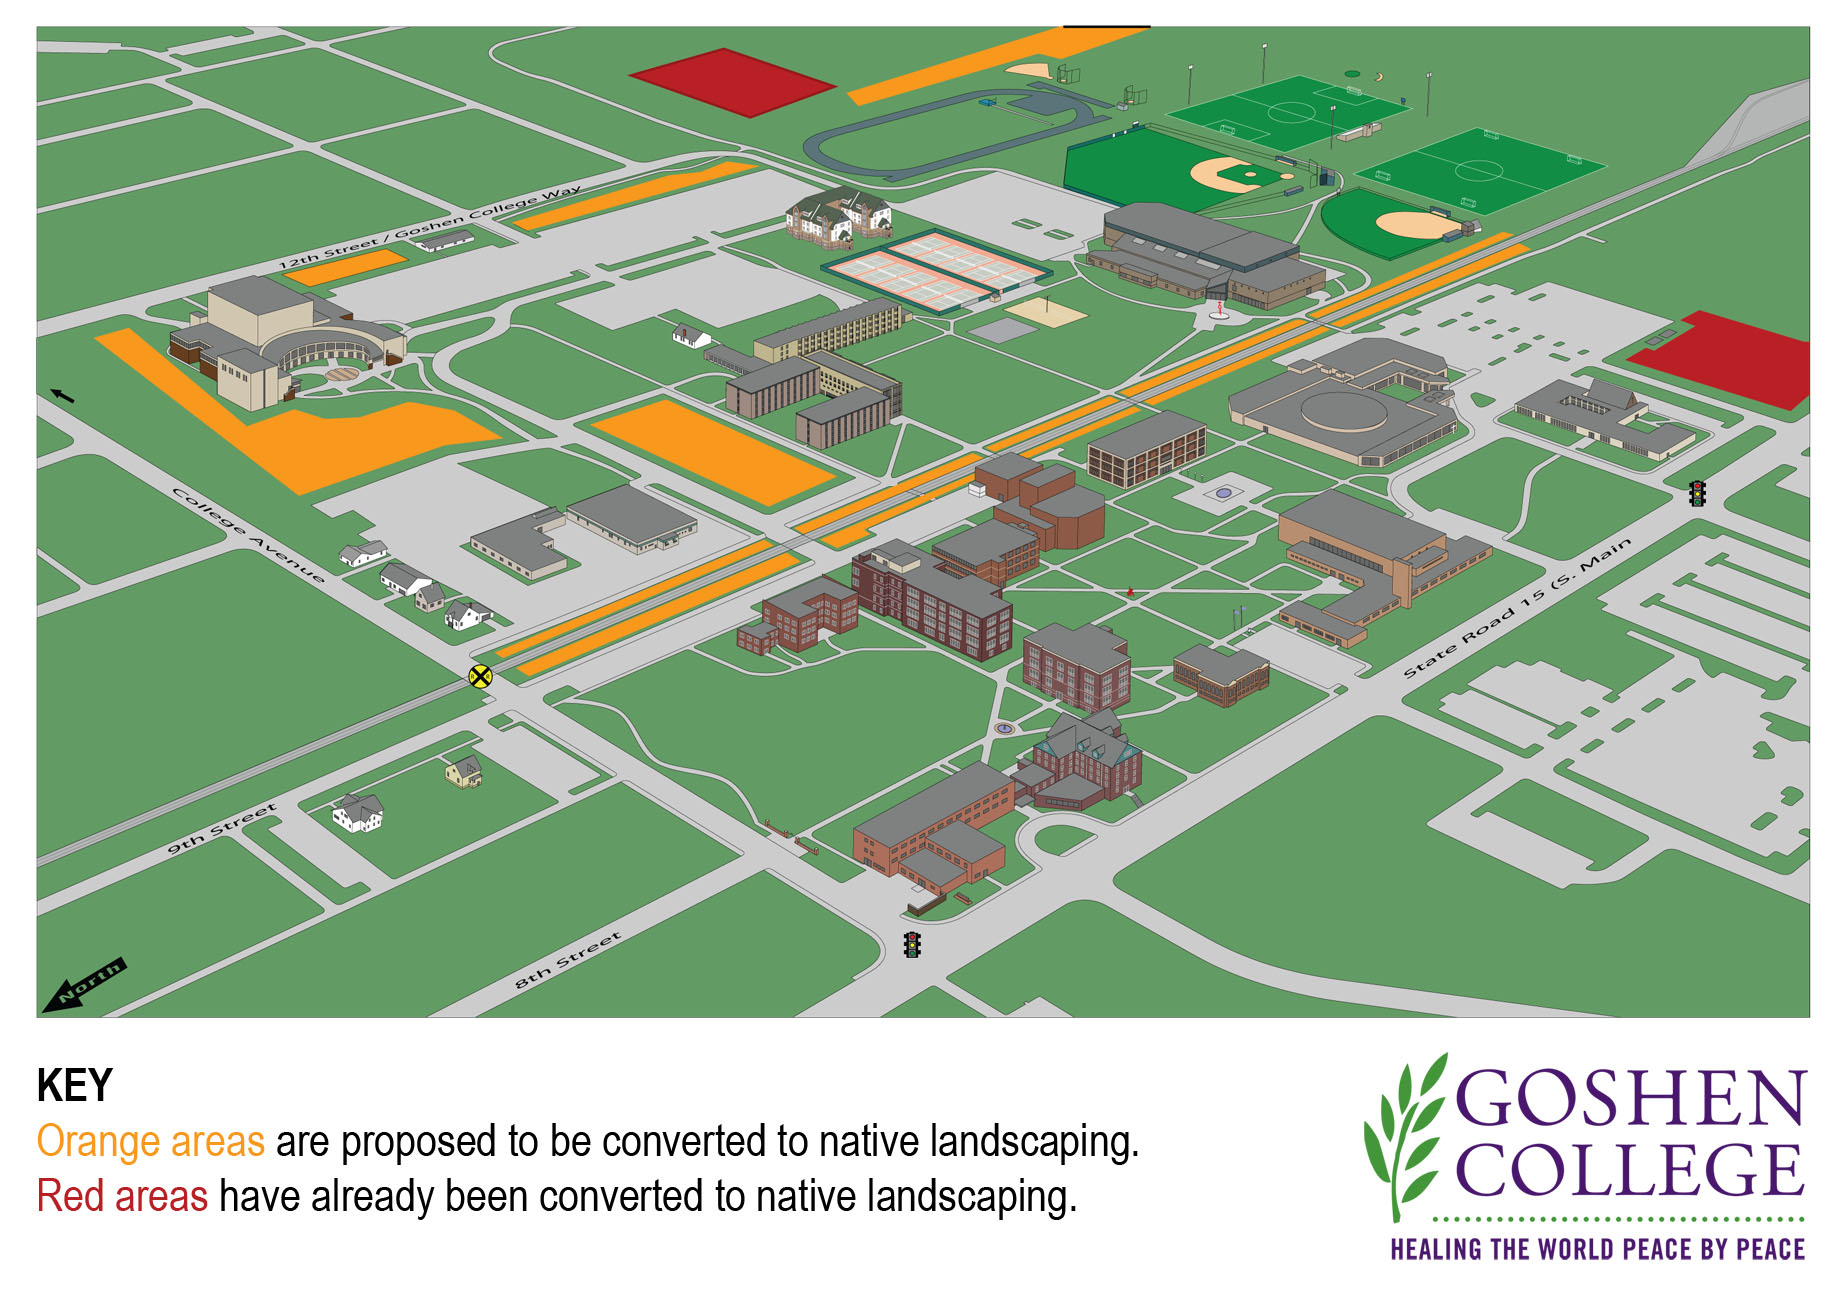 goshen college campus map Campus Map Native Plantings Sustainability Goshen College goshen college campus map